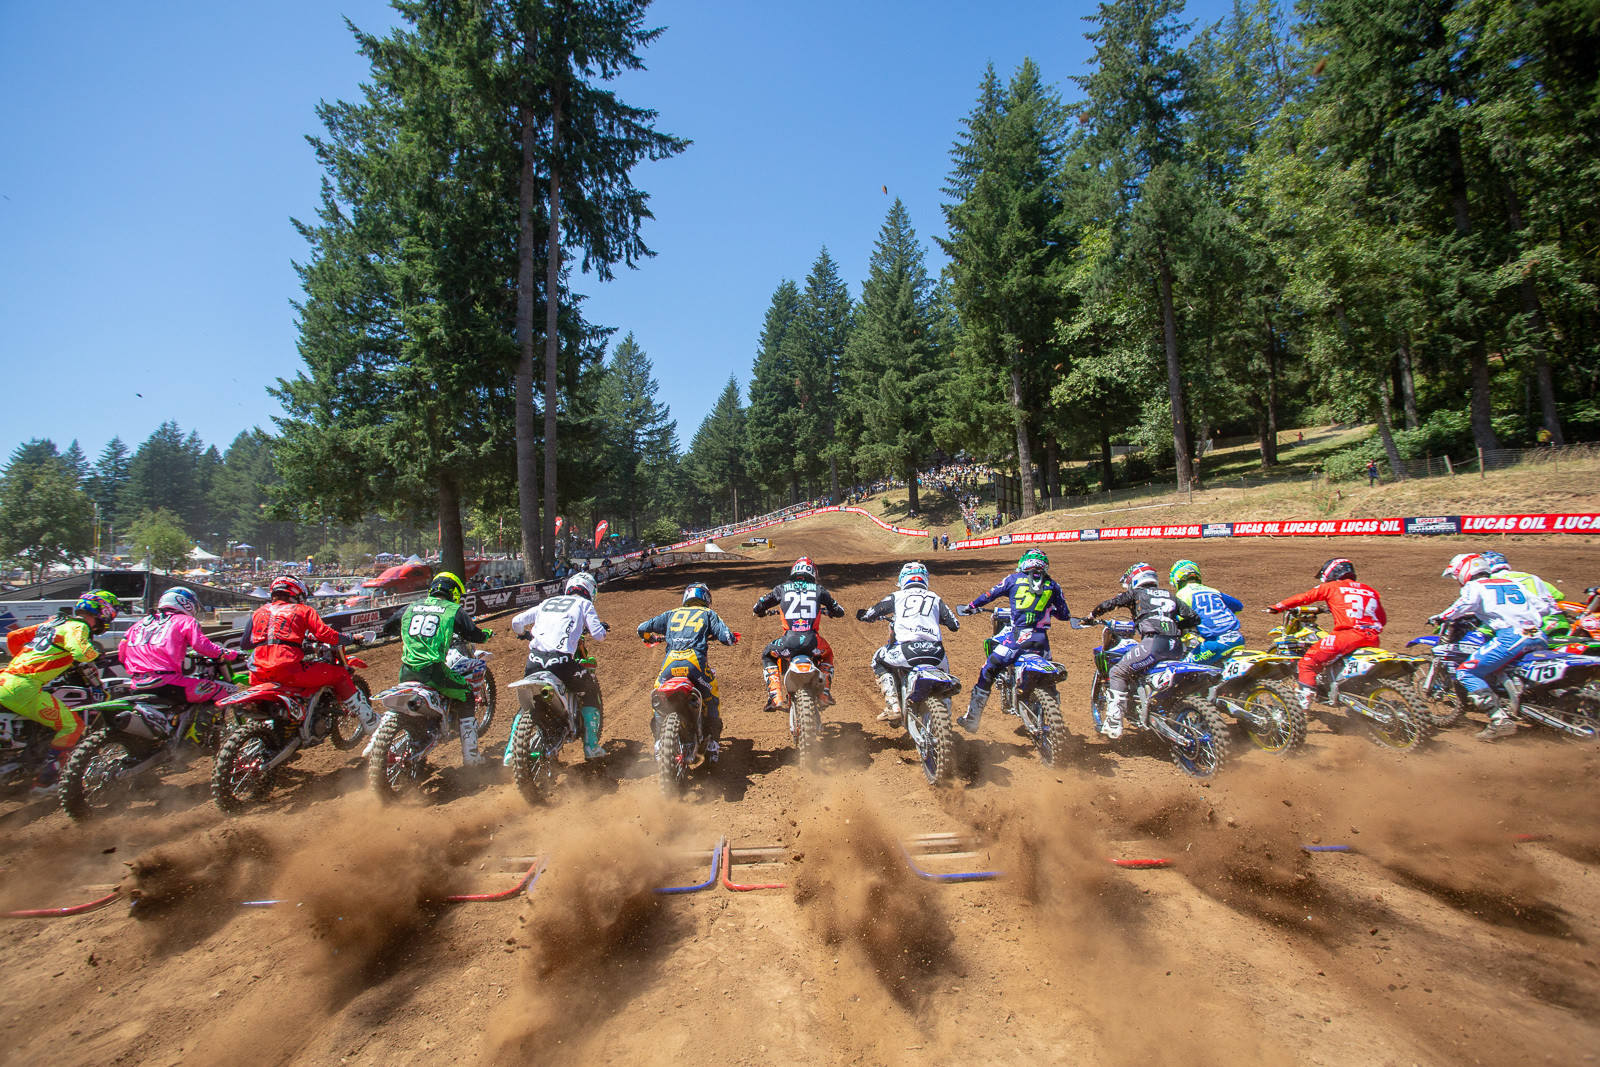 We can't think of too many tracks that feature the gorgeous woodsy setting that Washougal has. This year has been a hot and dry one in the northwest, and while it may not have been as lush and green as usual, there was still plenty of roost to dish up. Beware of incoming!